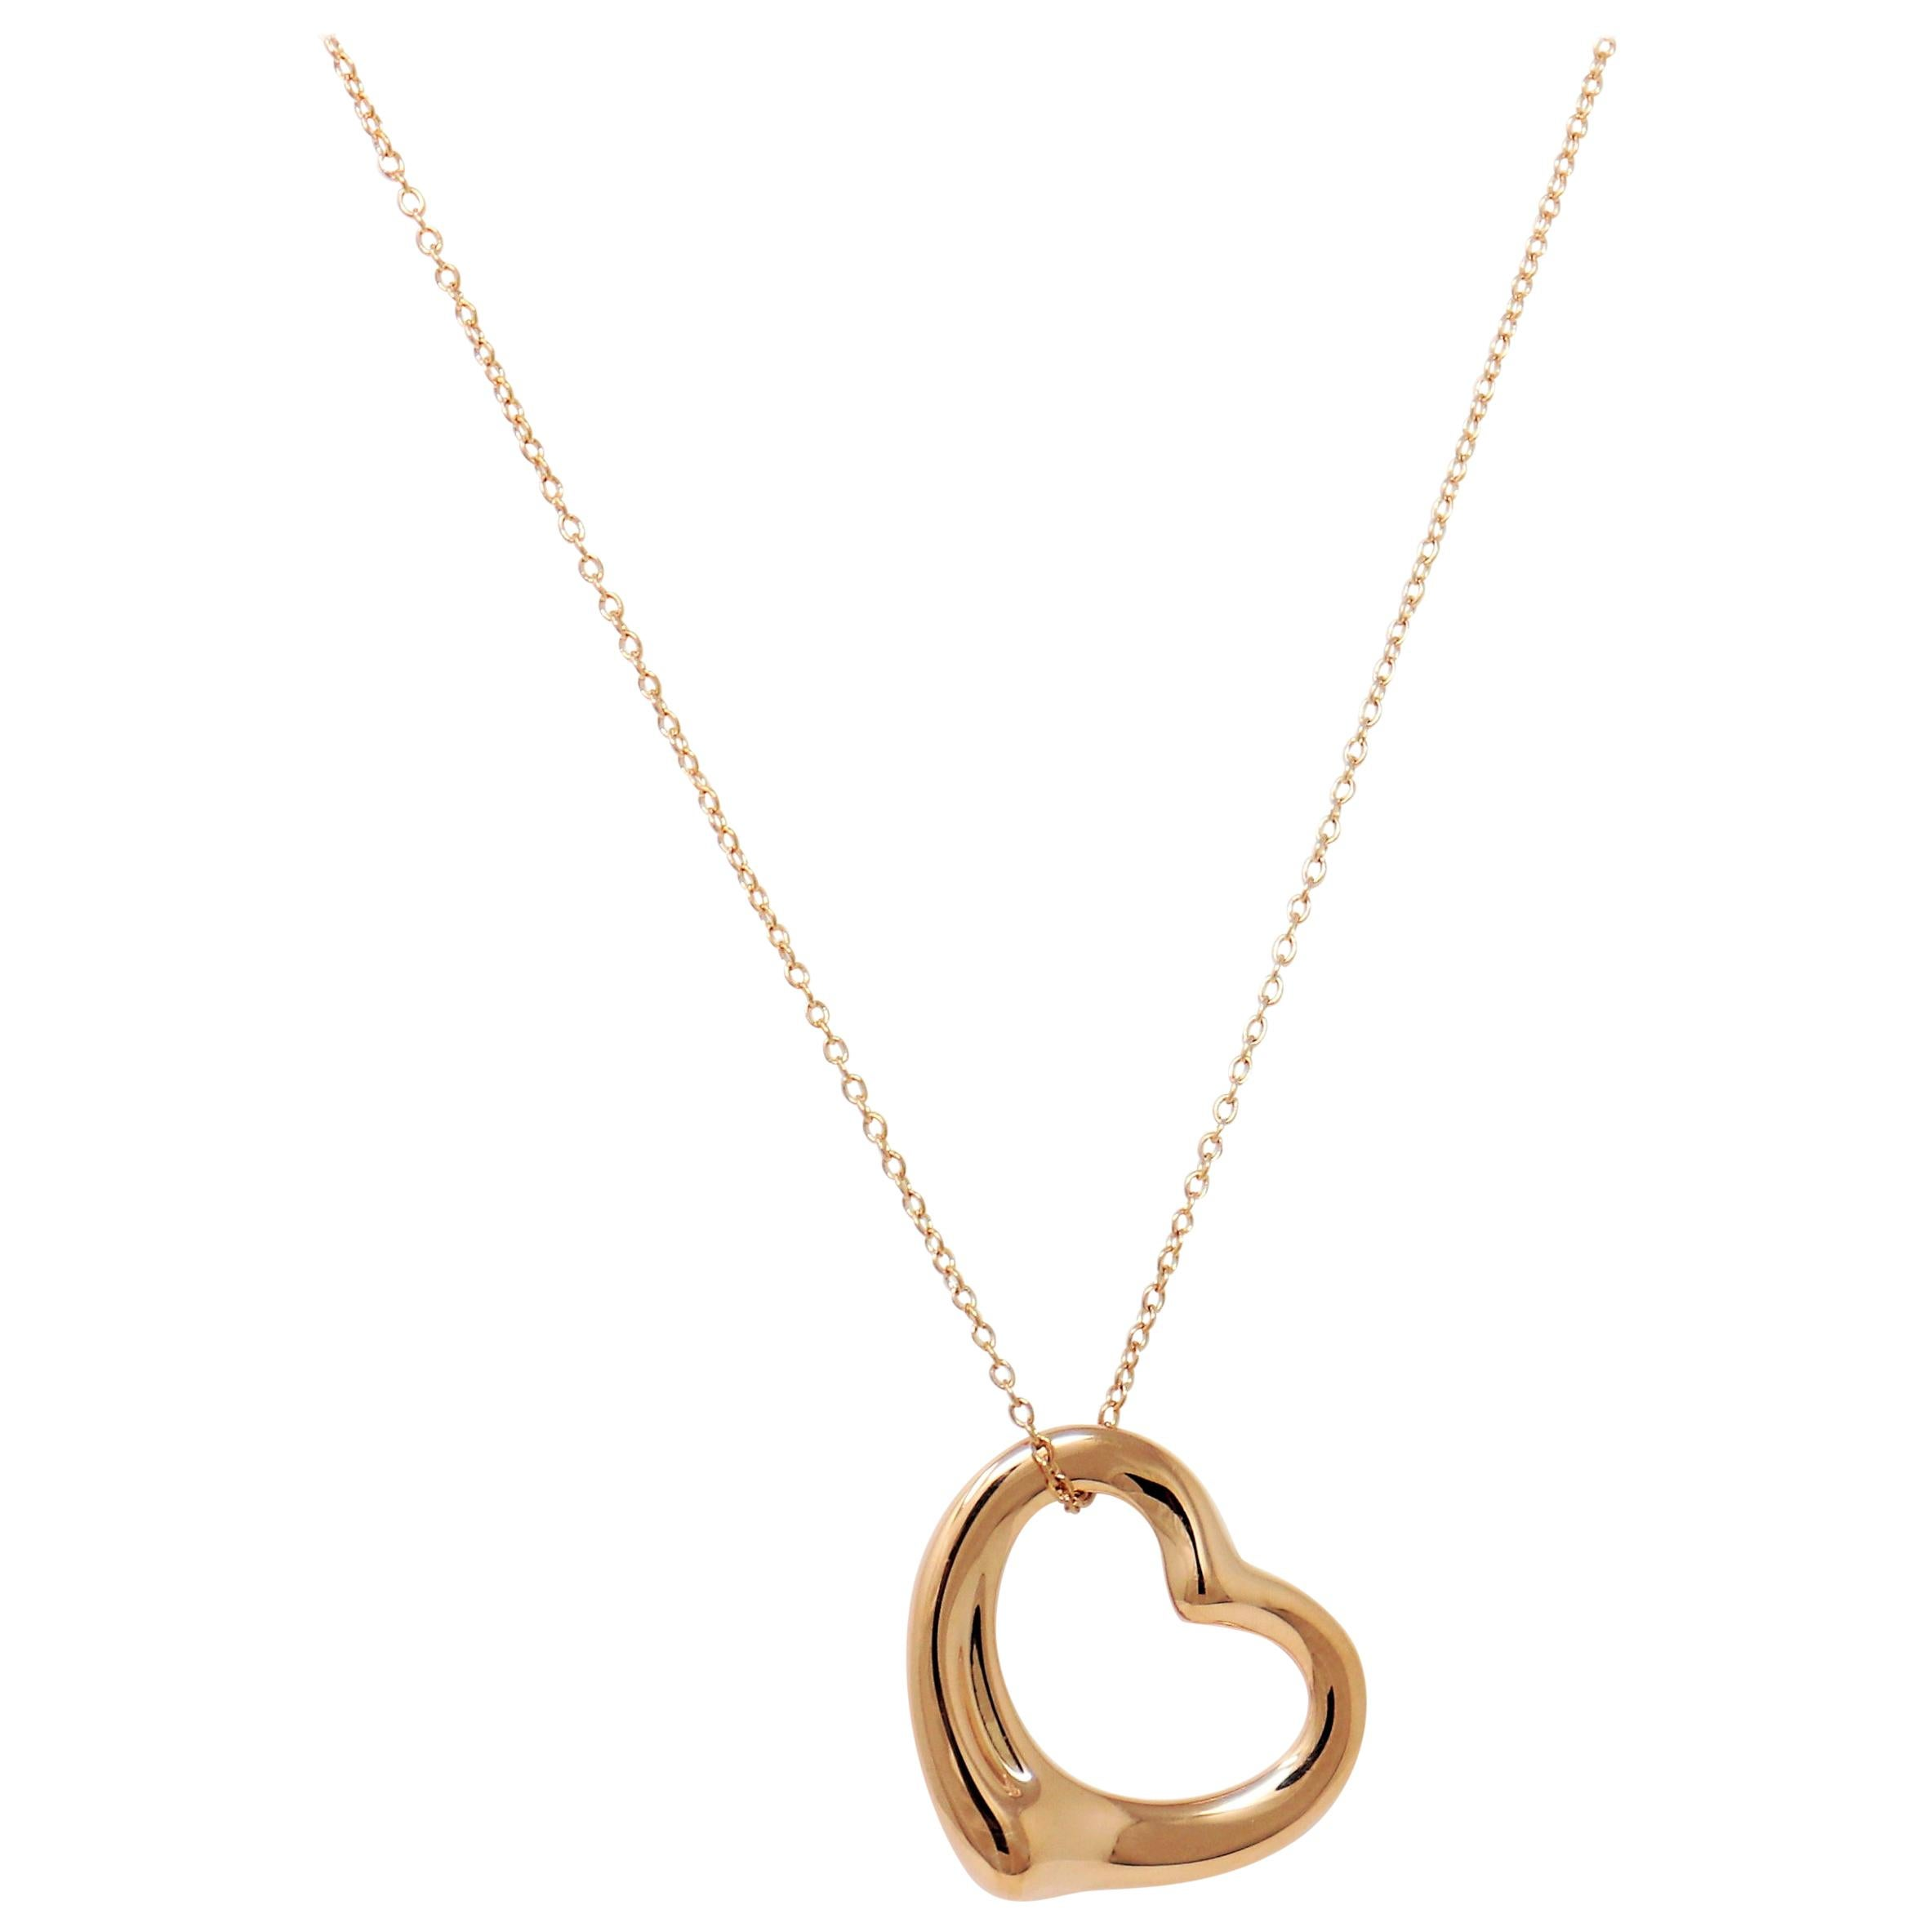 Elsa Peretti for Tiffany & Co. 18 Karat Rose Gold Open Heart Pendant Necklace